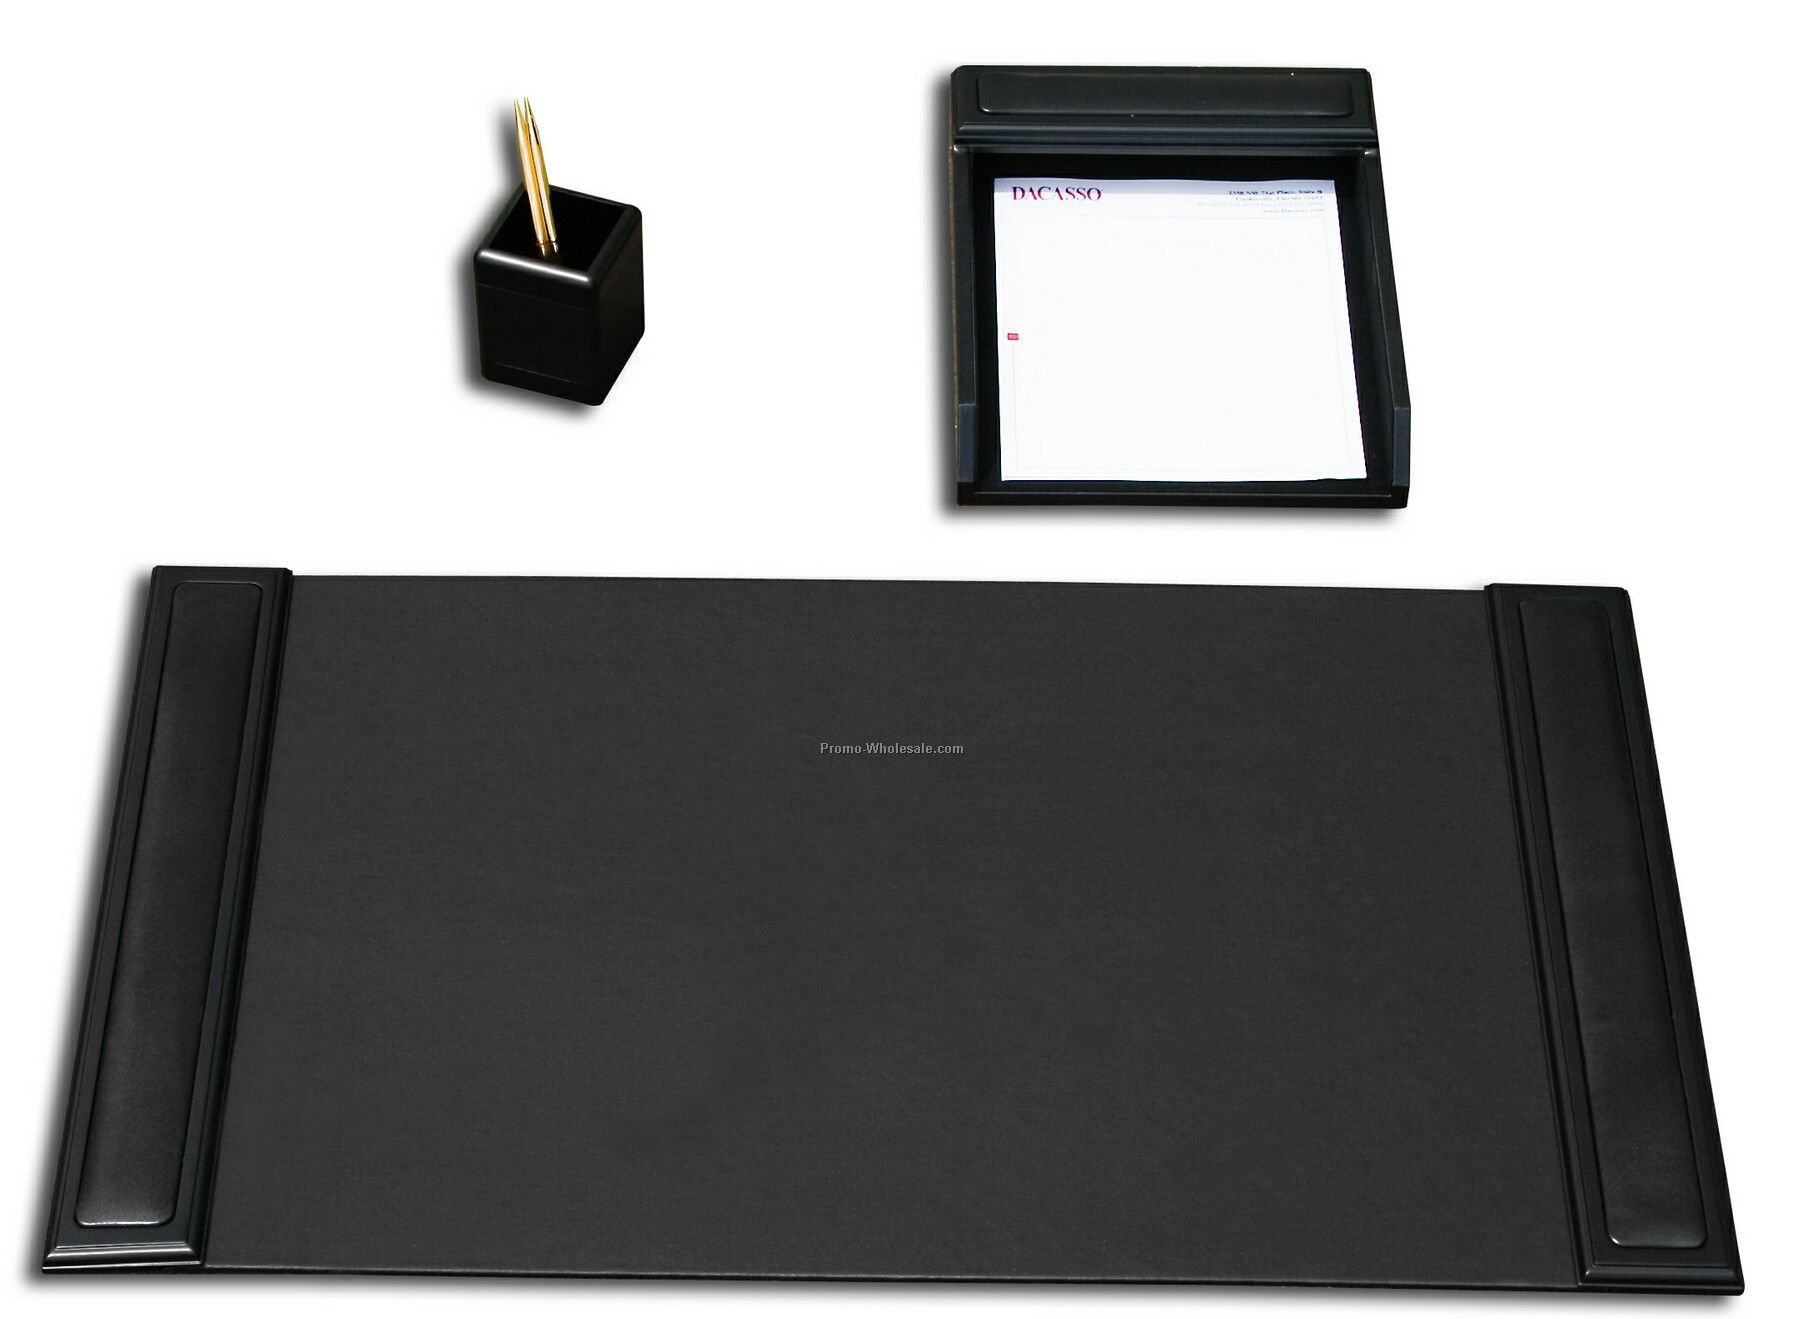 3-piece Wood & Leather Desk Set - Blackwood Trim